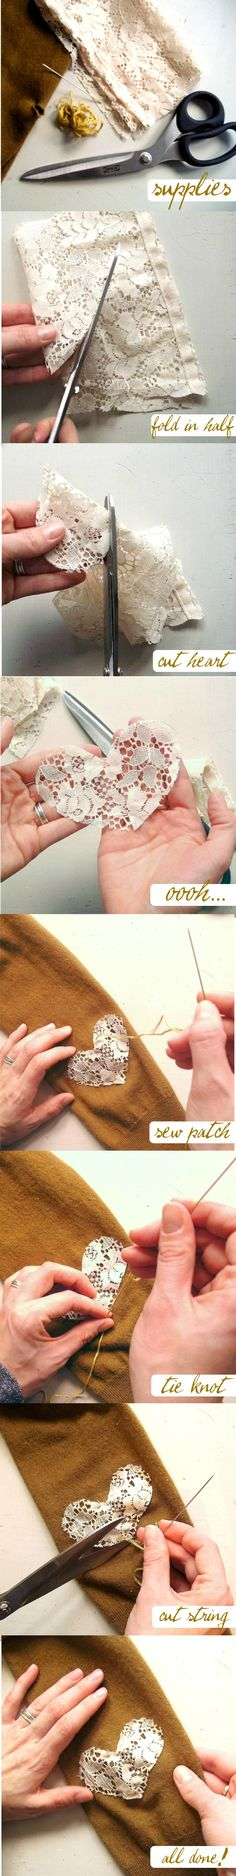 How to make lace heart patches. Easy trick for covering up slightly damaged fabric. Fabric Crafts, Sewing Crafts, Sewing Projects, Diy Projects, Fabric Glue, Diy Patches, Elbow Patches, Diy Love, Fun Diy